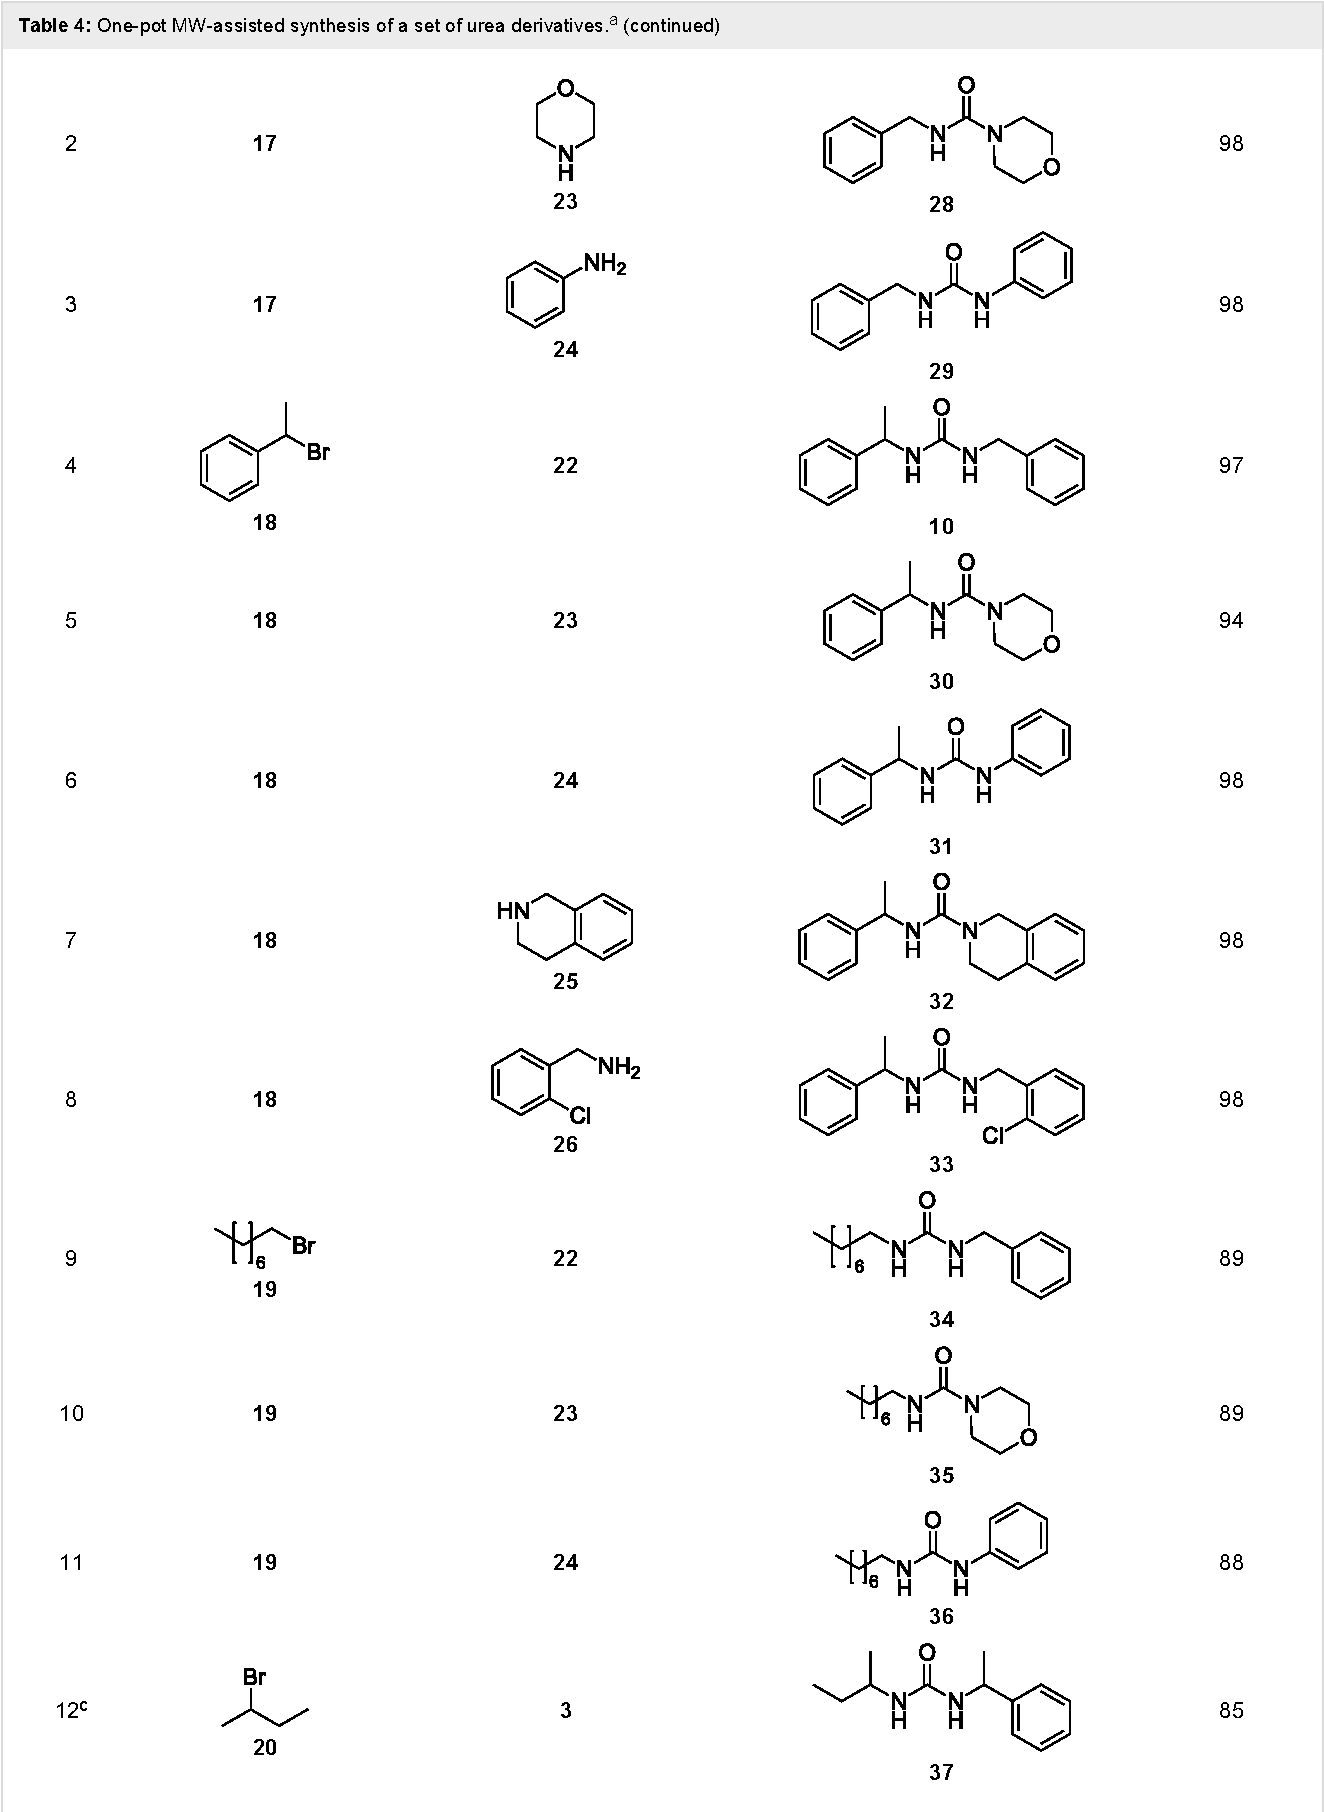 Table 4 from One-pot sequential synthesis of isocyanates and urea